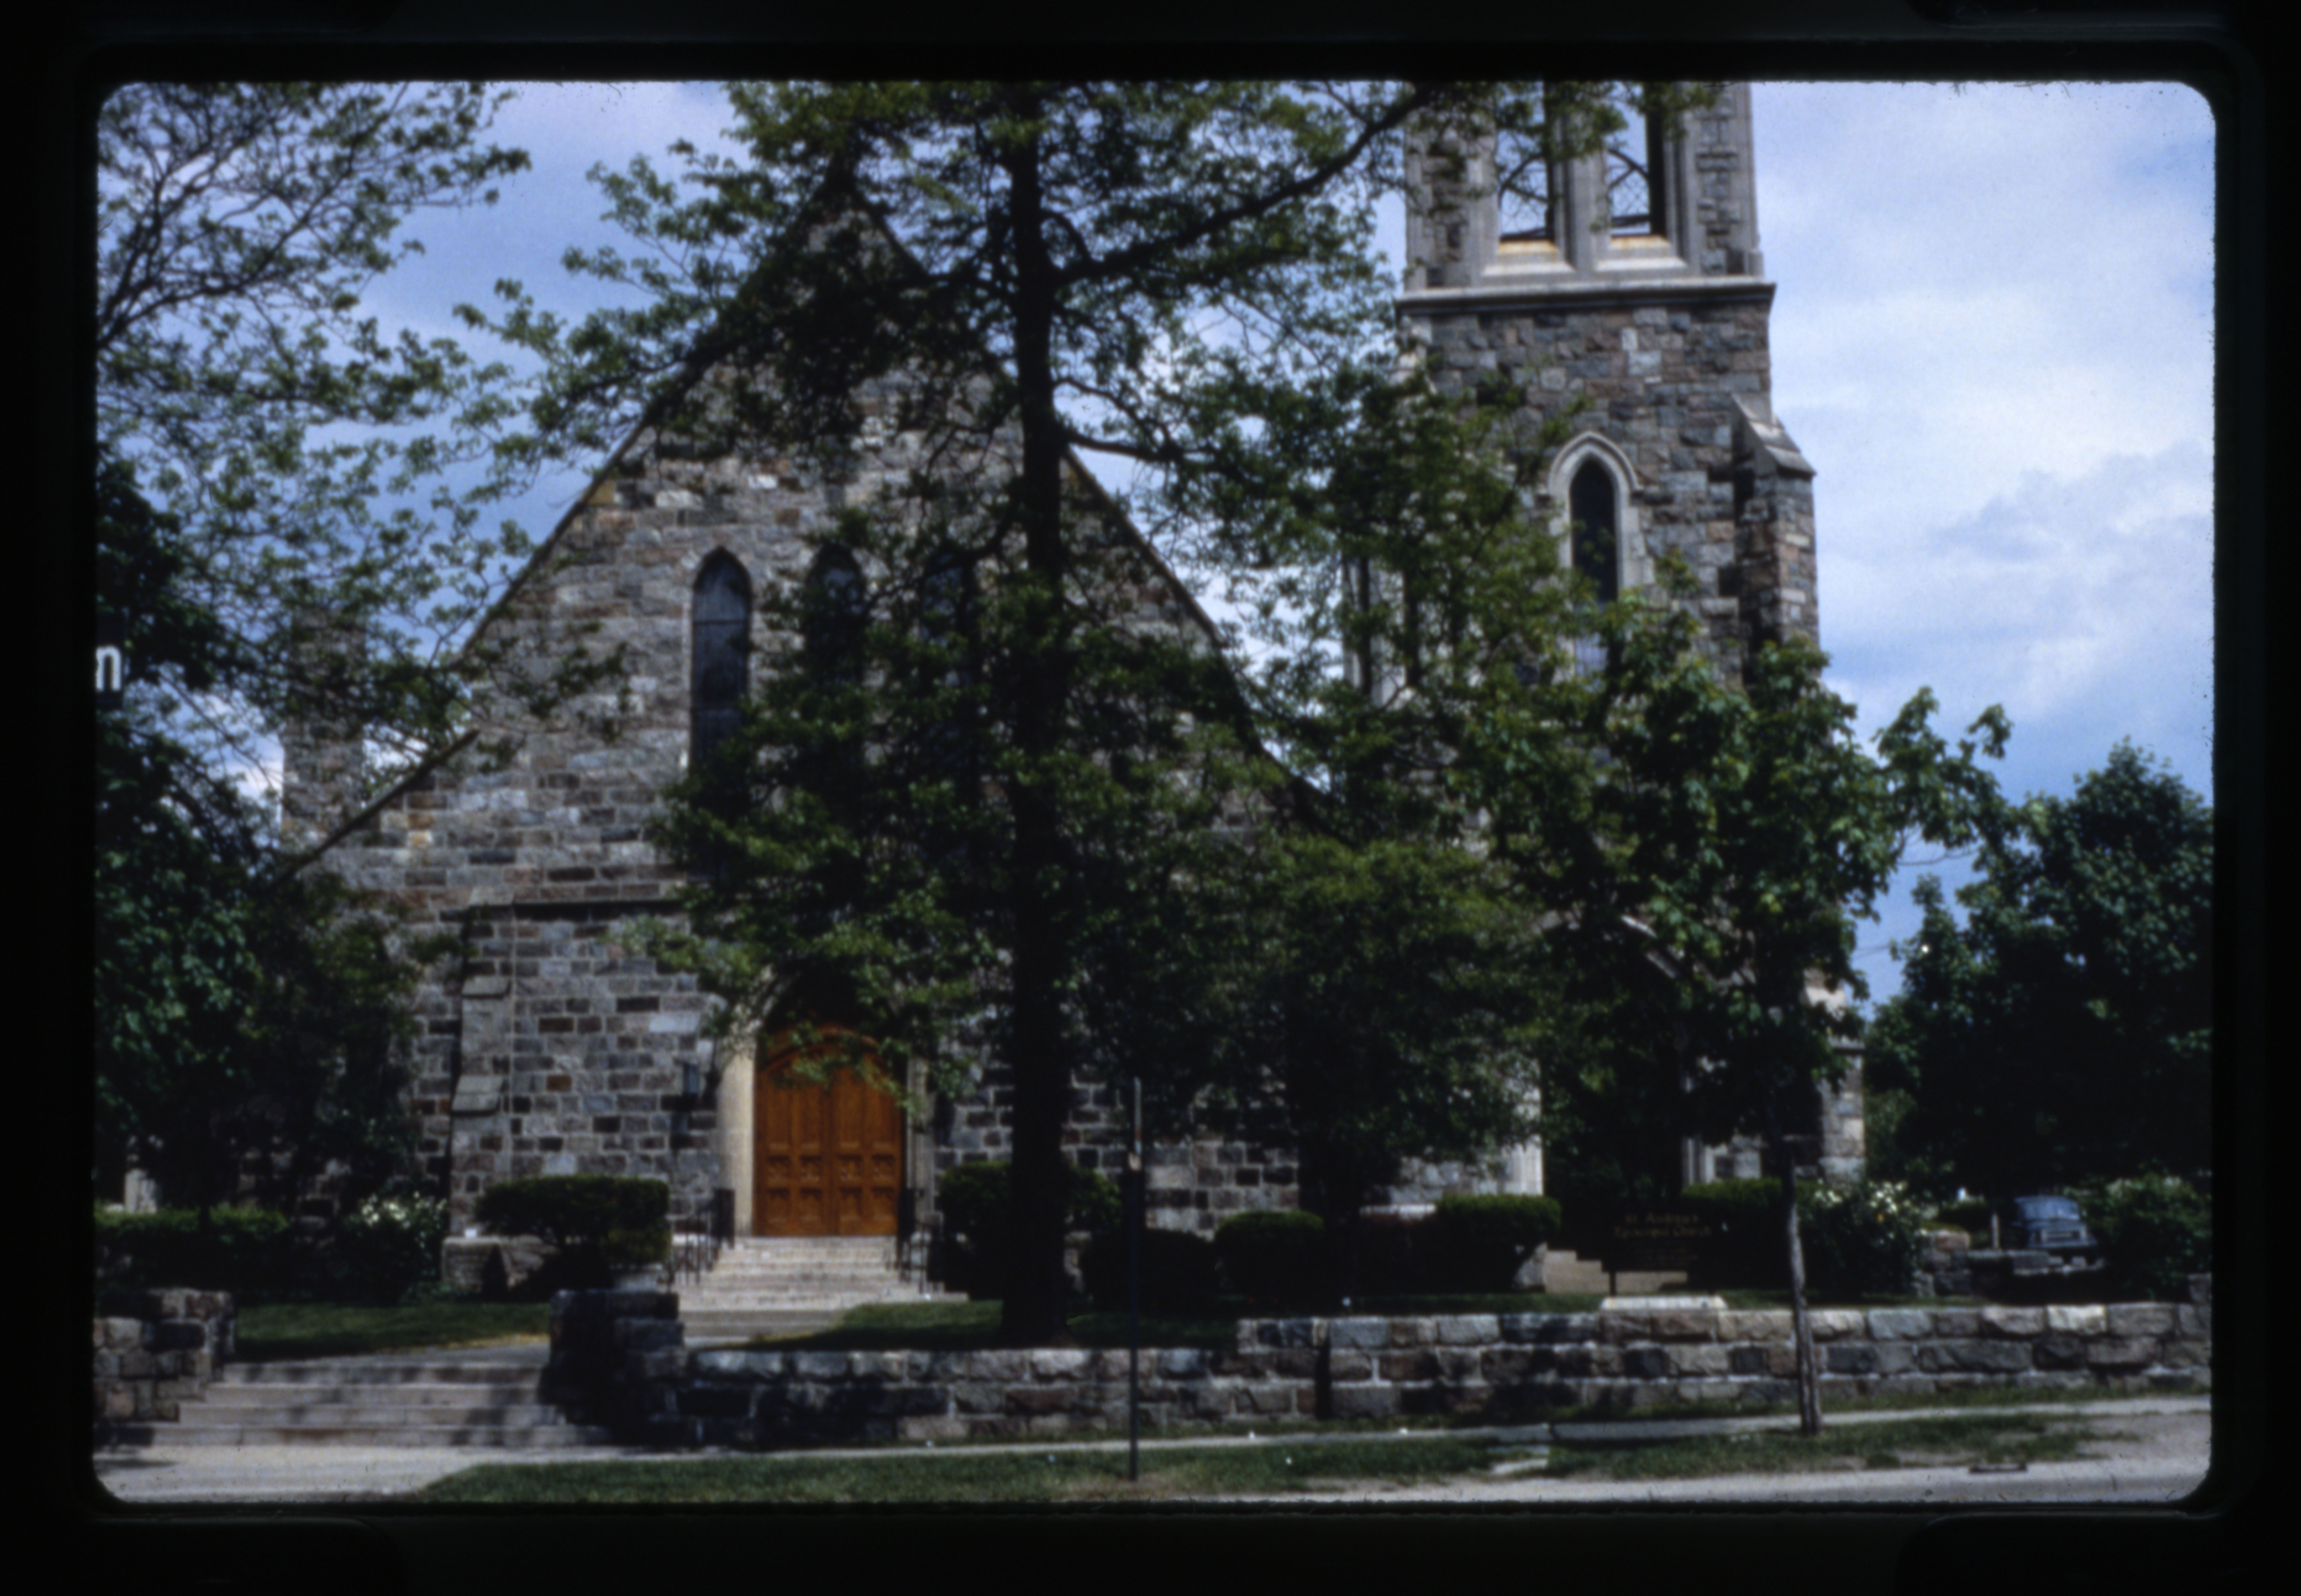 St. Andrew's Episcopal Church, 1983 image